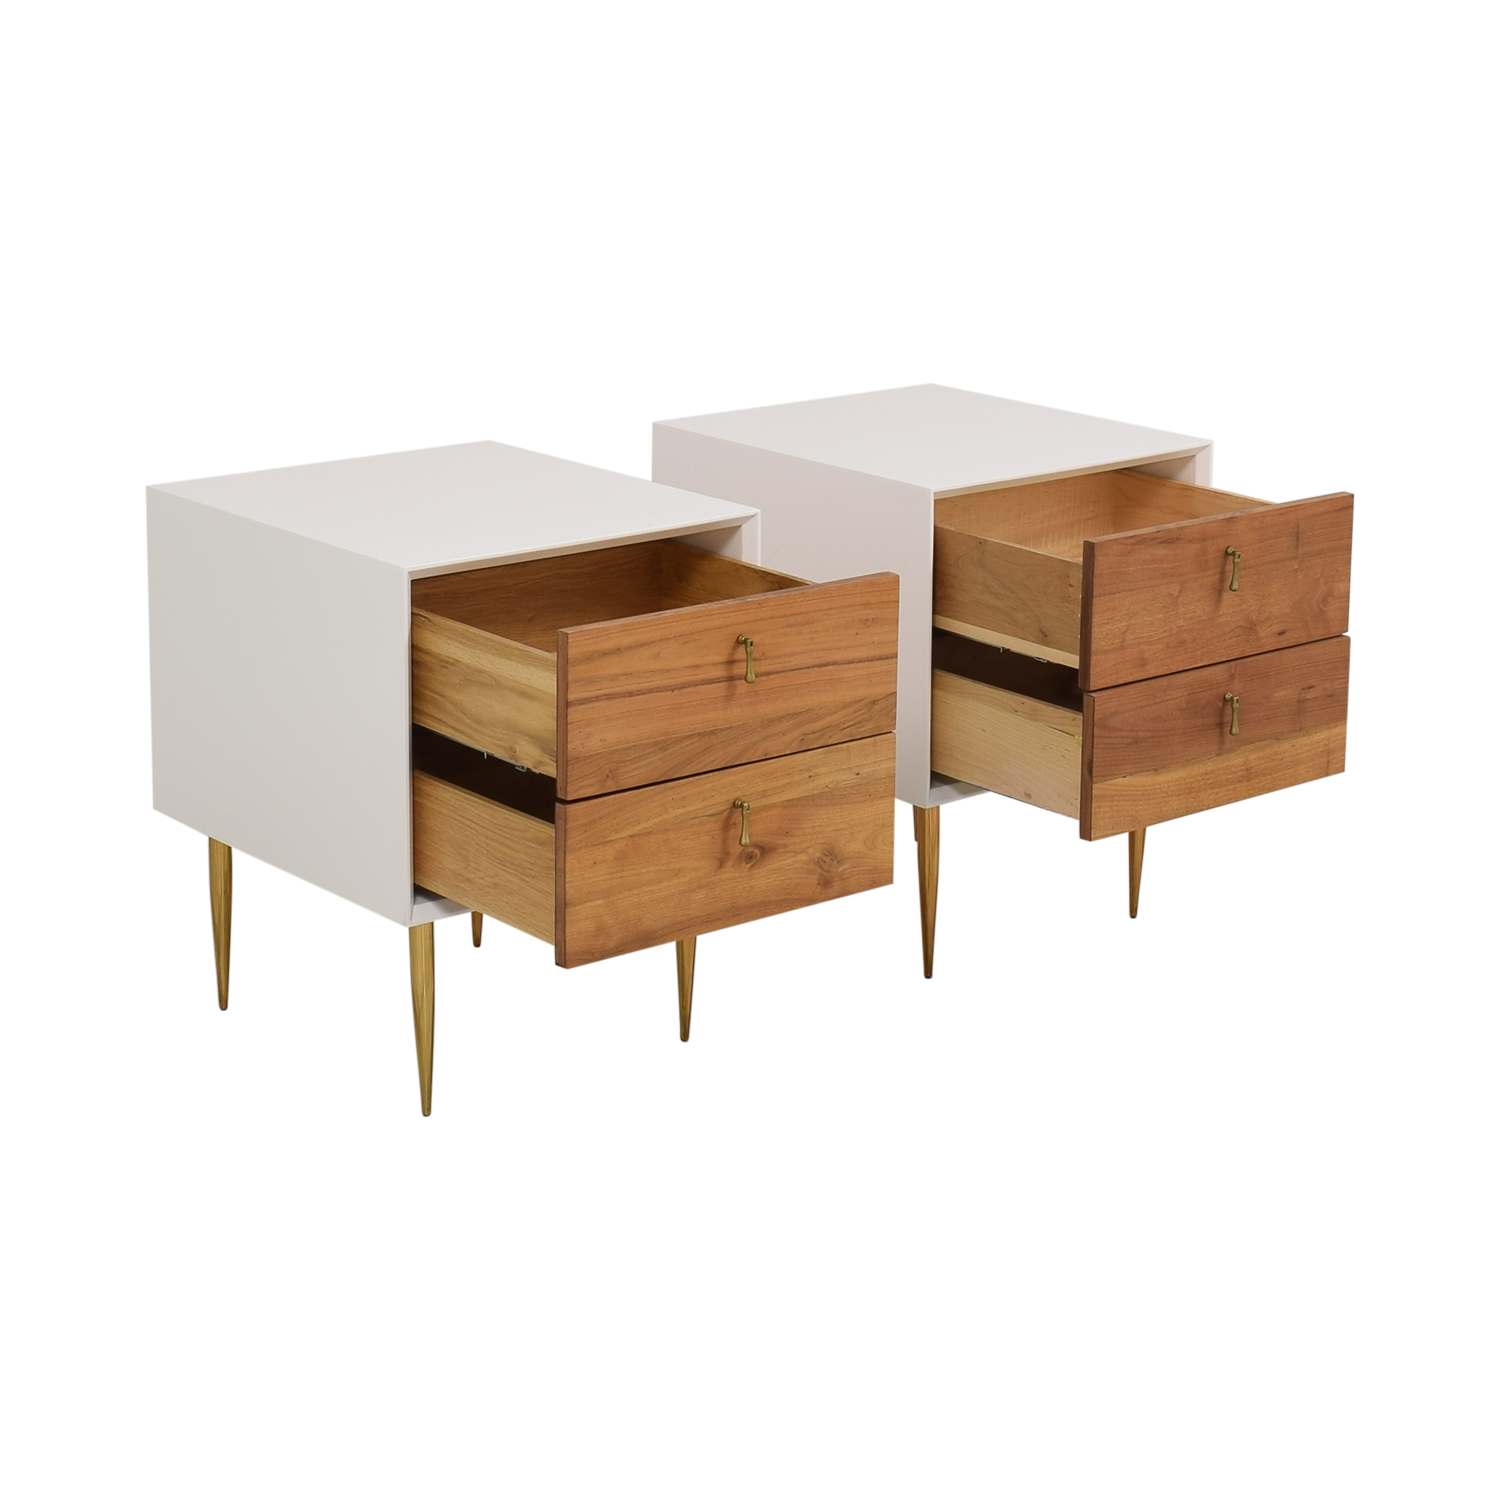 Organic Modernism Two Drawer Bedside Tables / Tables